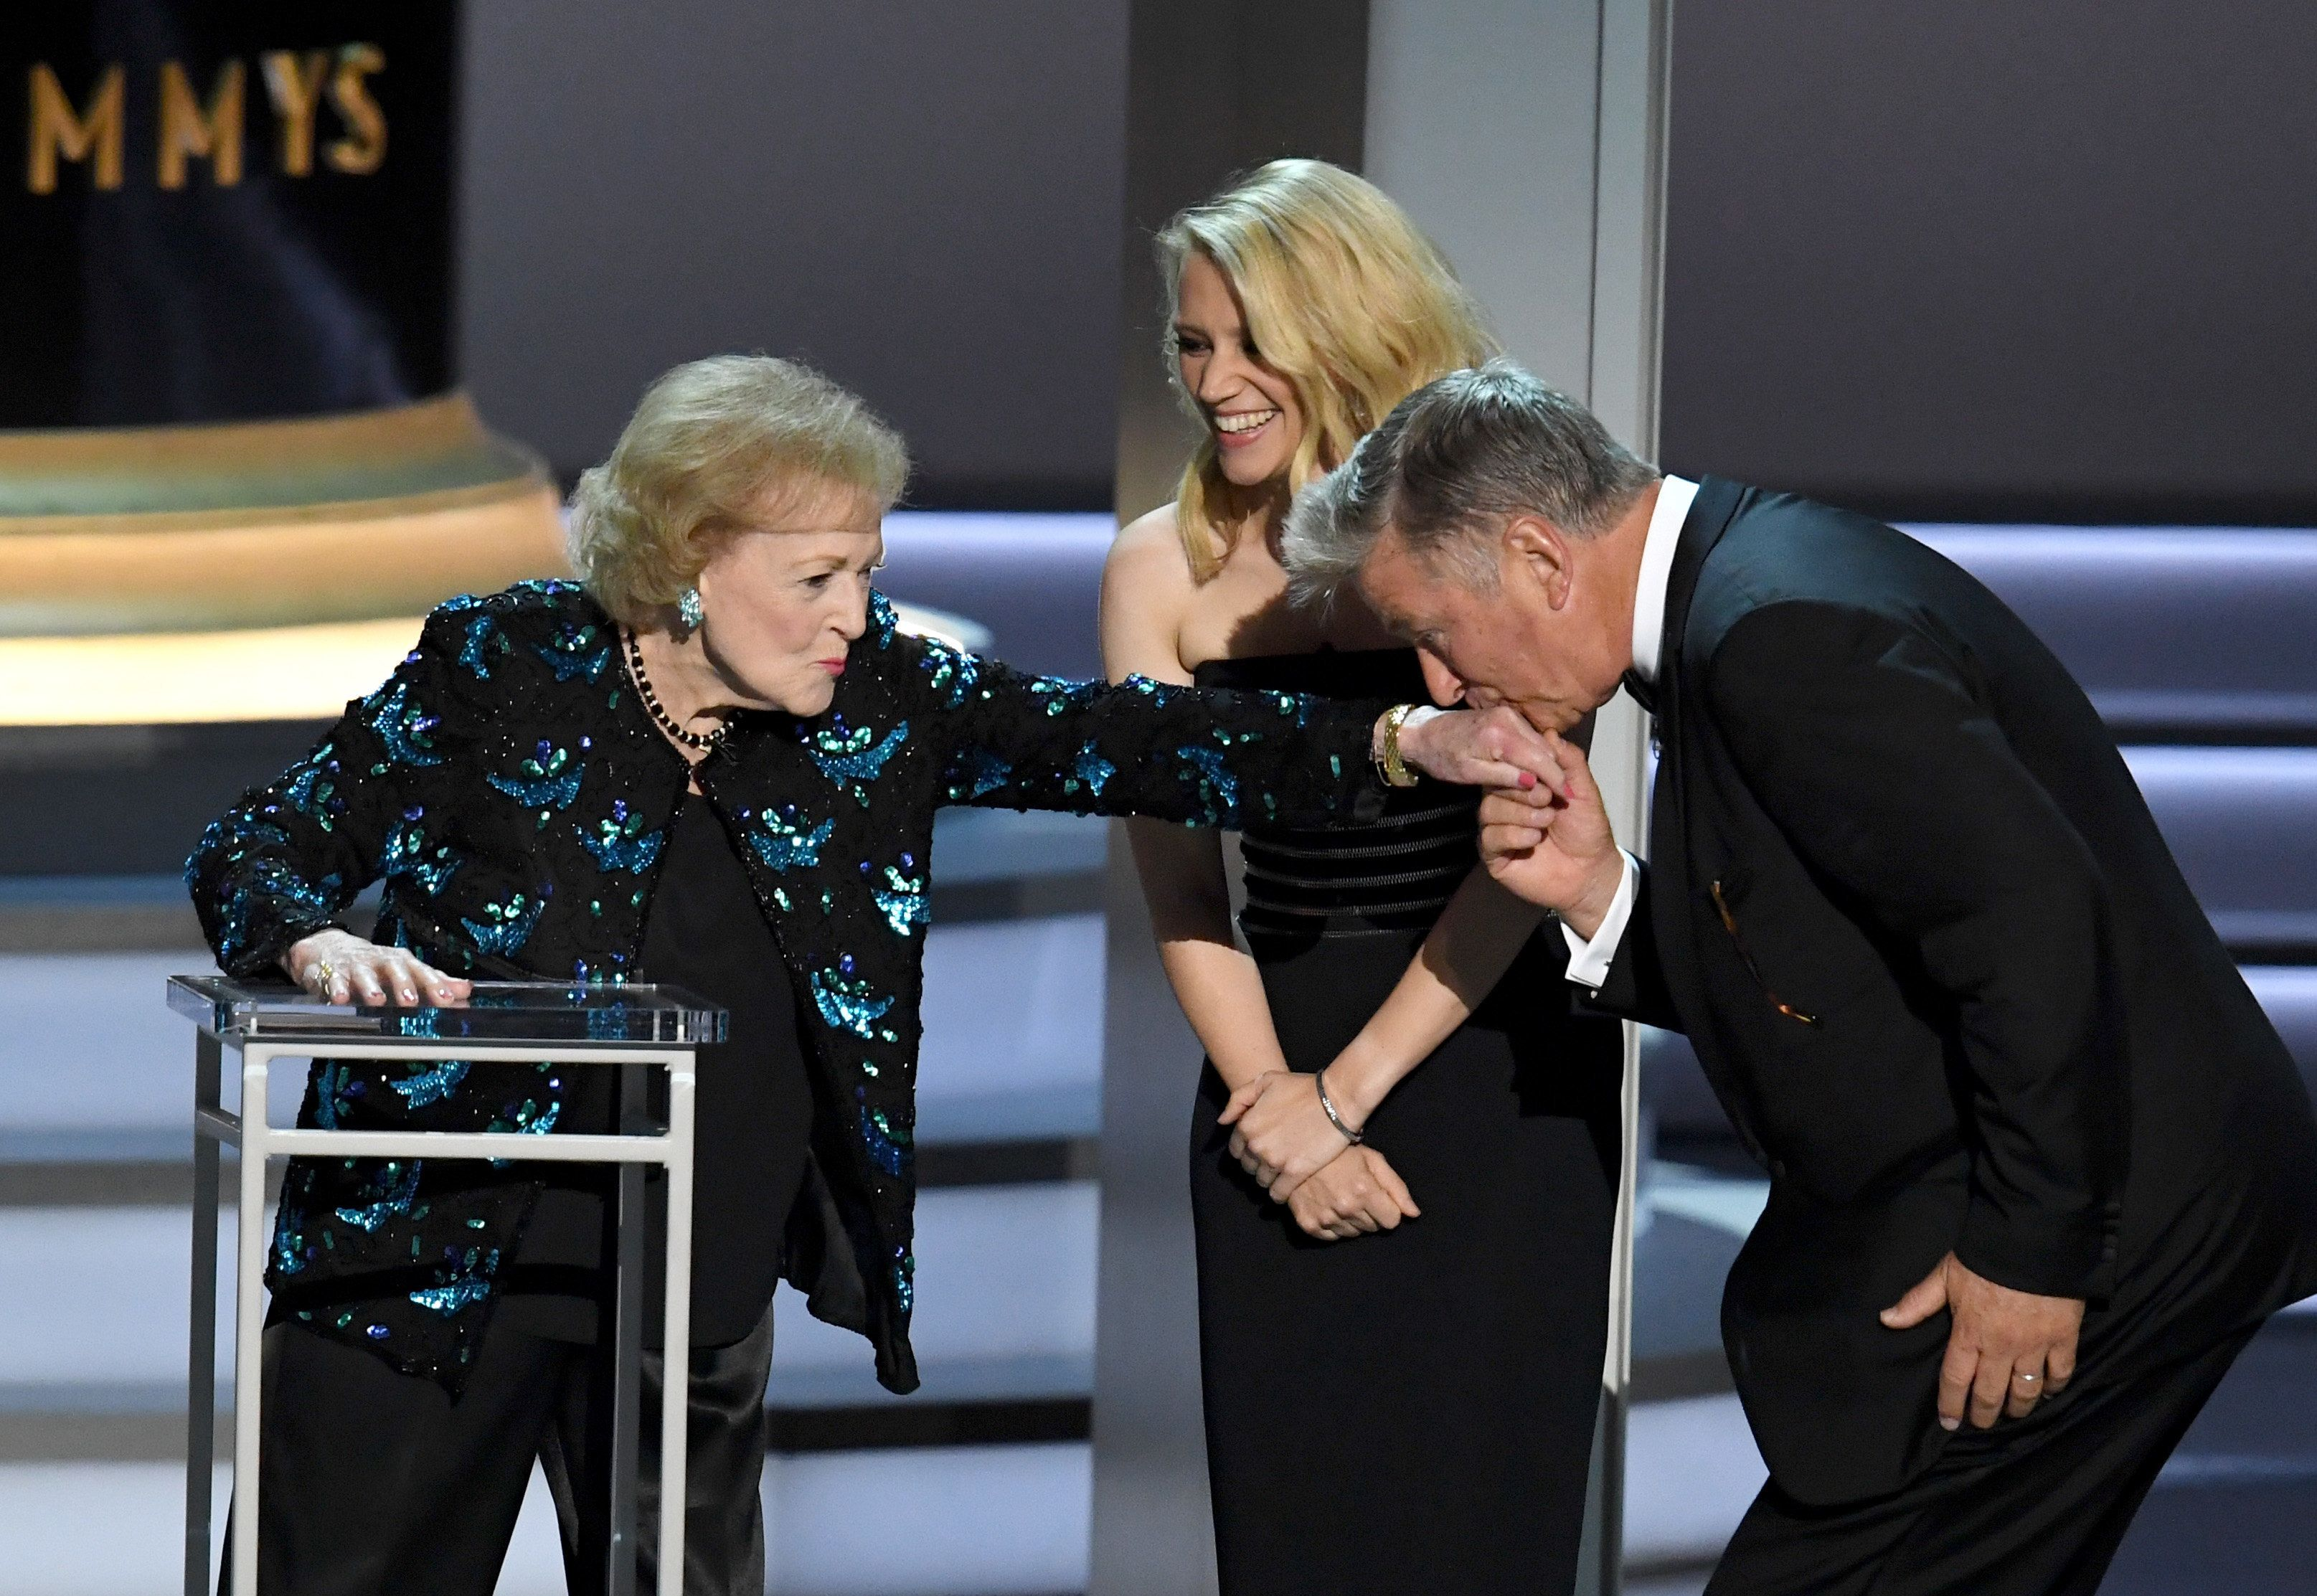 LOS ANGELES, CA - SEPTEMBER 17:  (L-R) Betty White, Kate McKinnon, and Alec Baldwin speak onstage during the 70th Emmy Awards at Microsoft Theater on September 17, 2018 in Los Angeles, California.  (Photo by Kevin Winter/Getty Images)